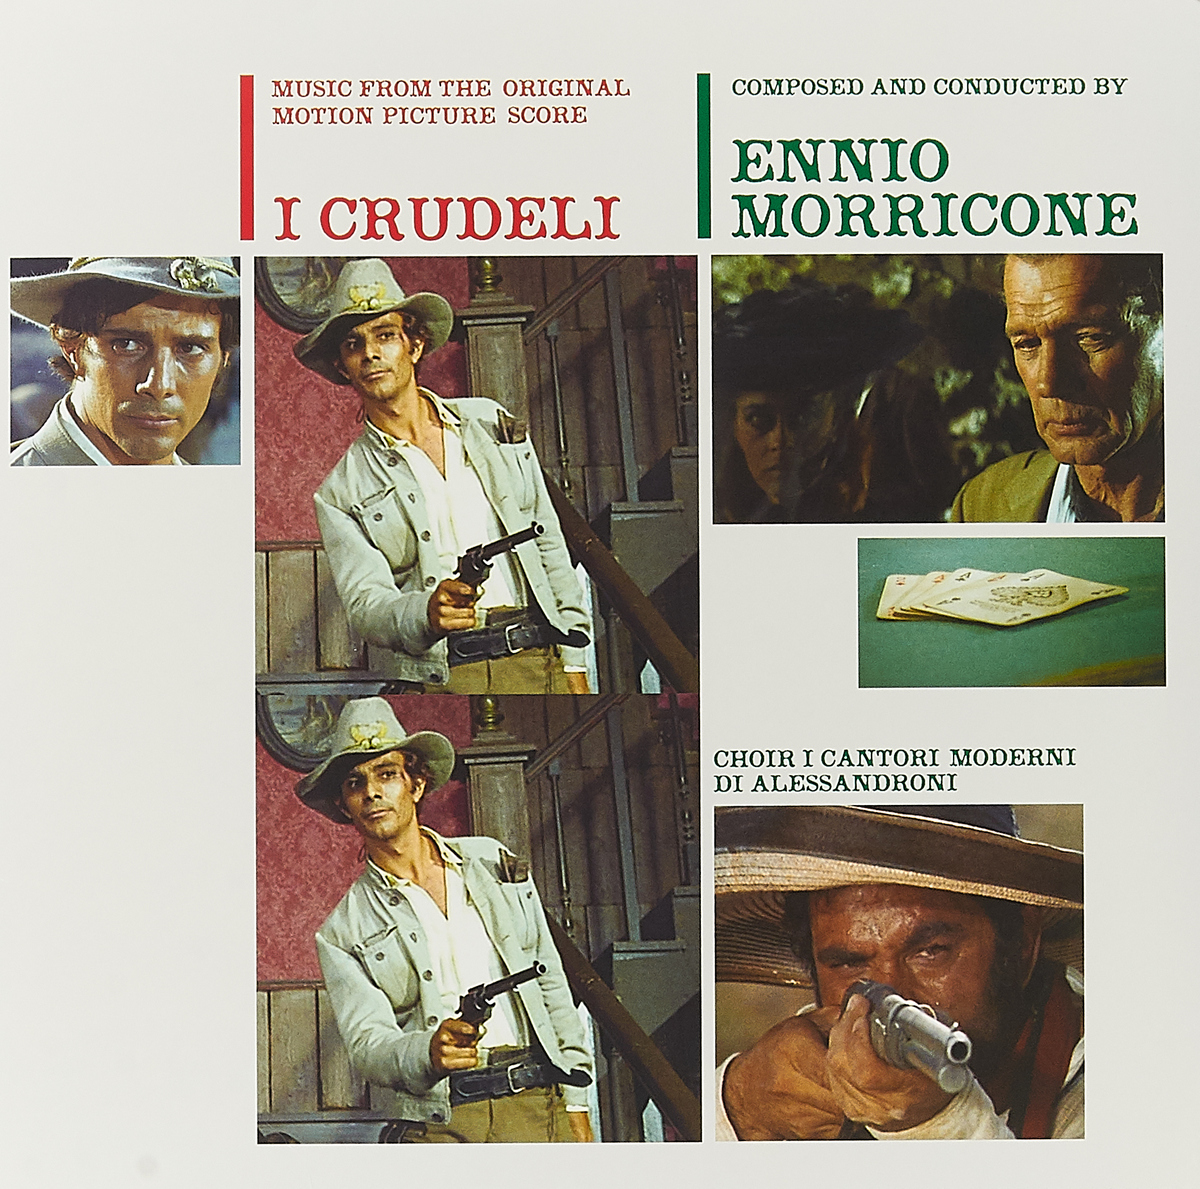 Эннио Морриконе Ennio Morricone. I Crudeli (Music From The Original Motion Picture Score) (LP) эннио морриконе ennio morricone a pure formality lp